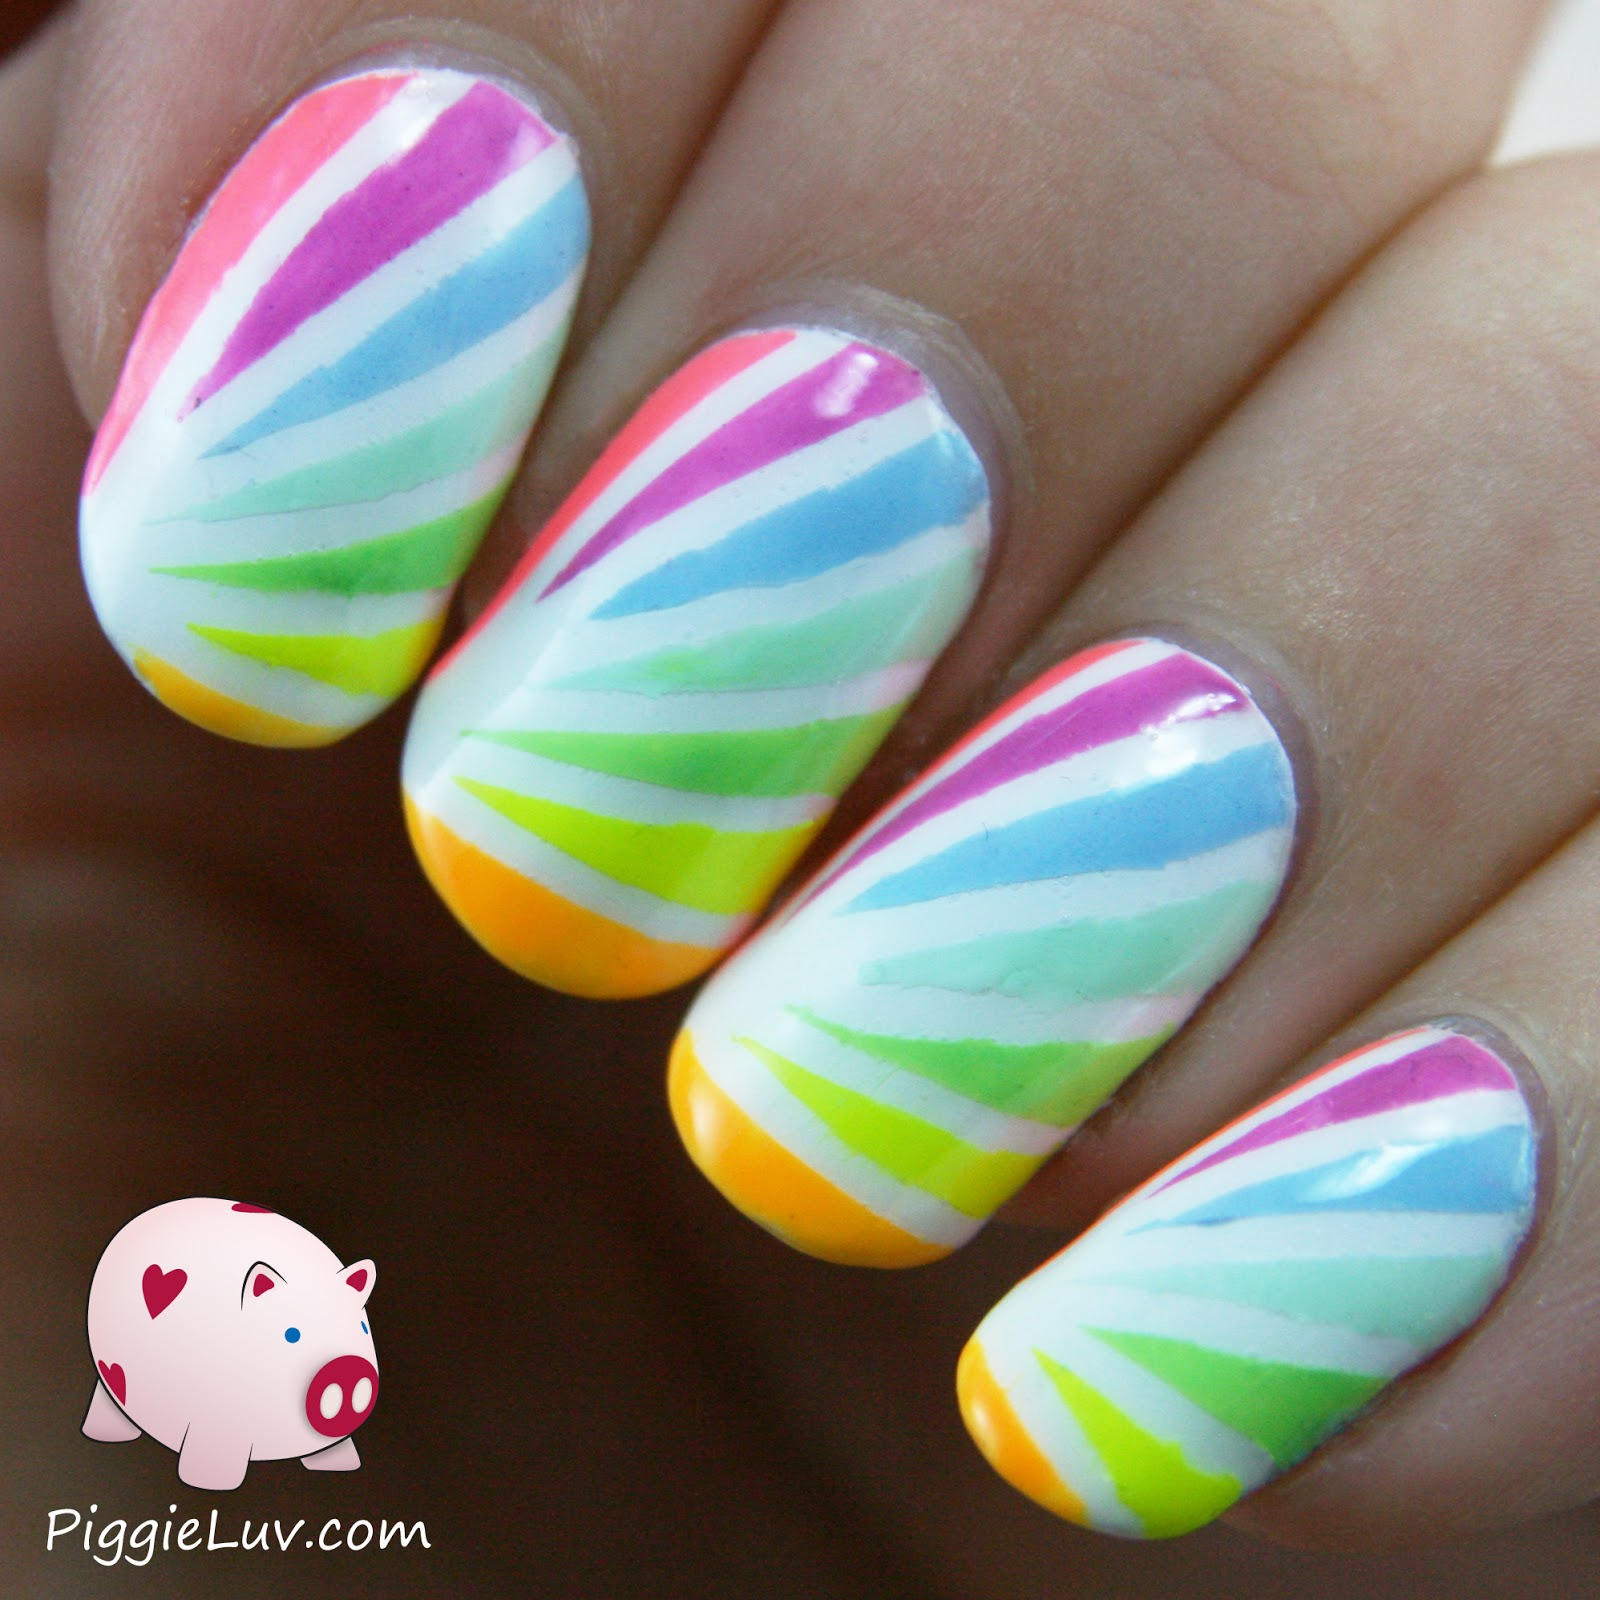 25 Beautiful Starburst Nails with Tape 2015/16 25 Beautiful Starburst Nails with Tape 2015/16 starburst nails with tape 20